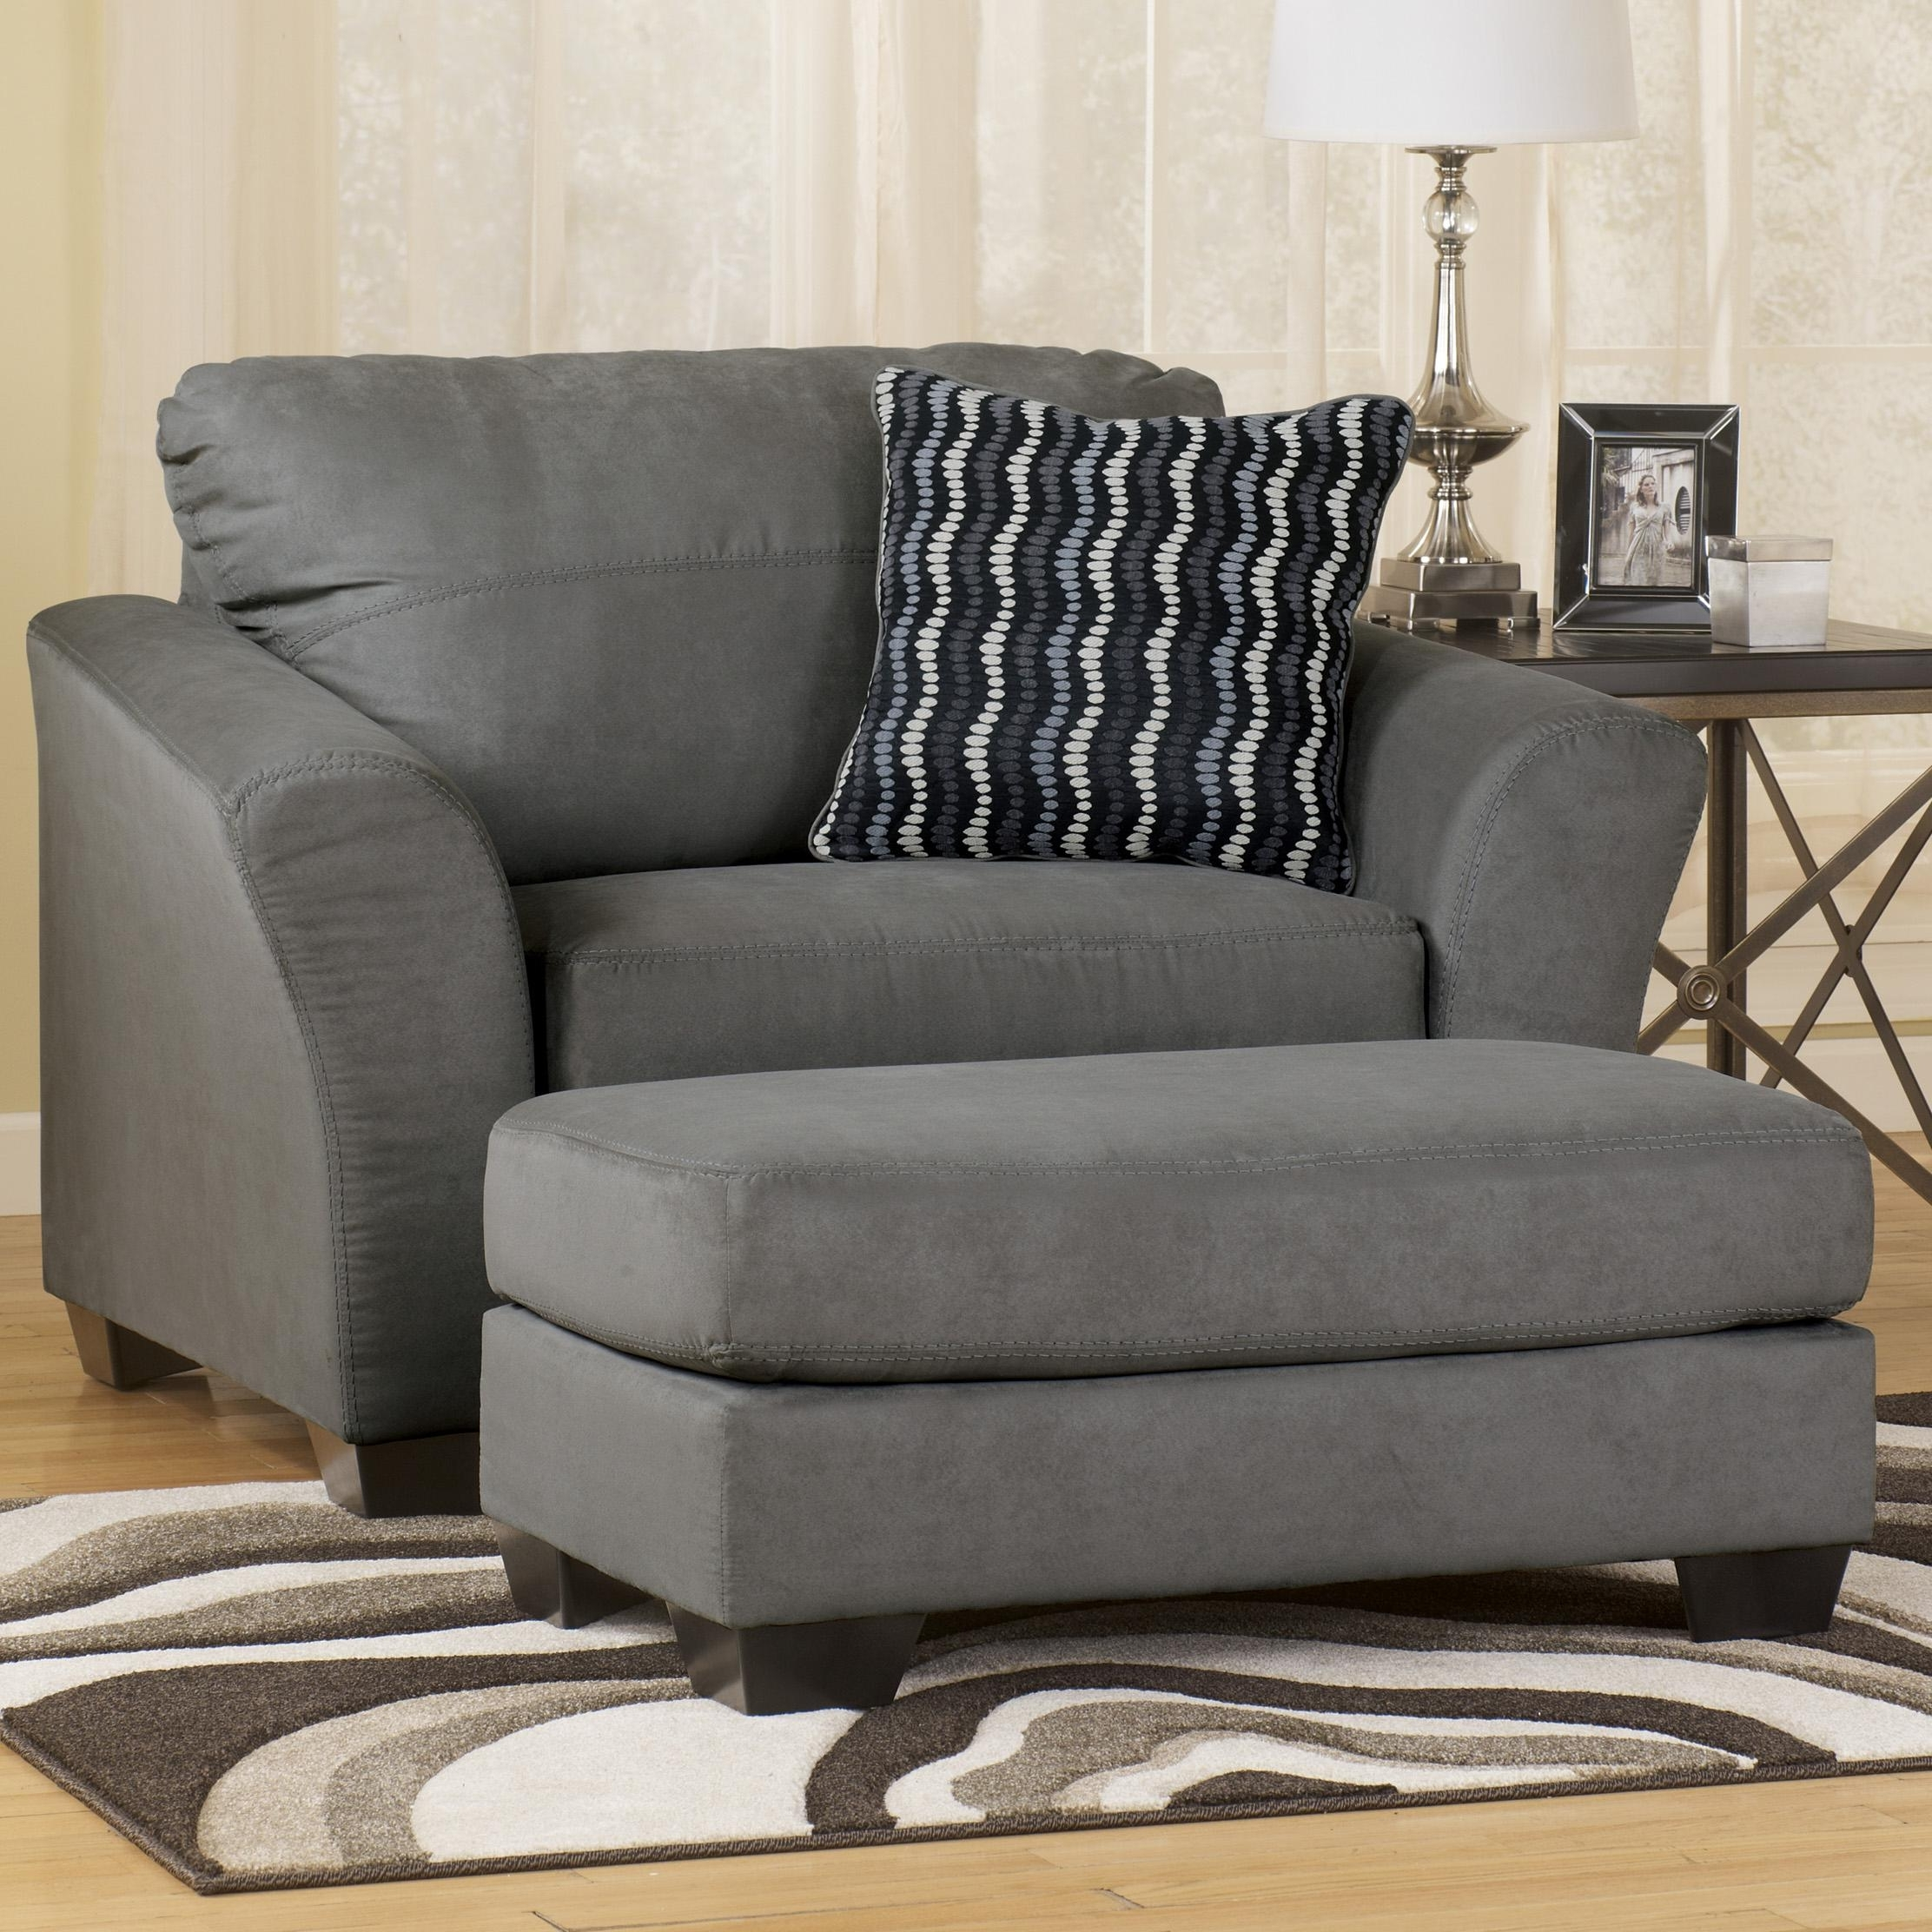 Signature Designashley Lexi – Cobblestone Contemporary Soft Inside Best And Newest Wide Sofa Chairs (View 3 of 20)